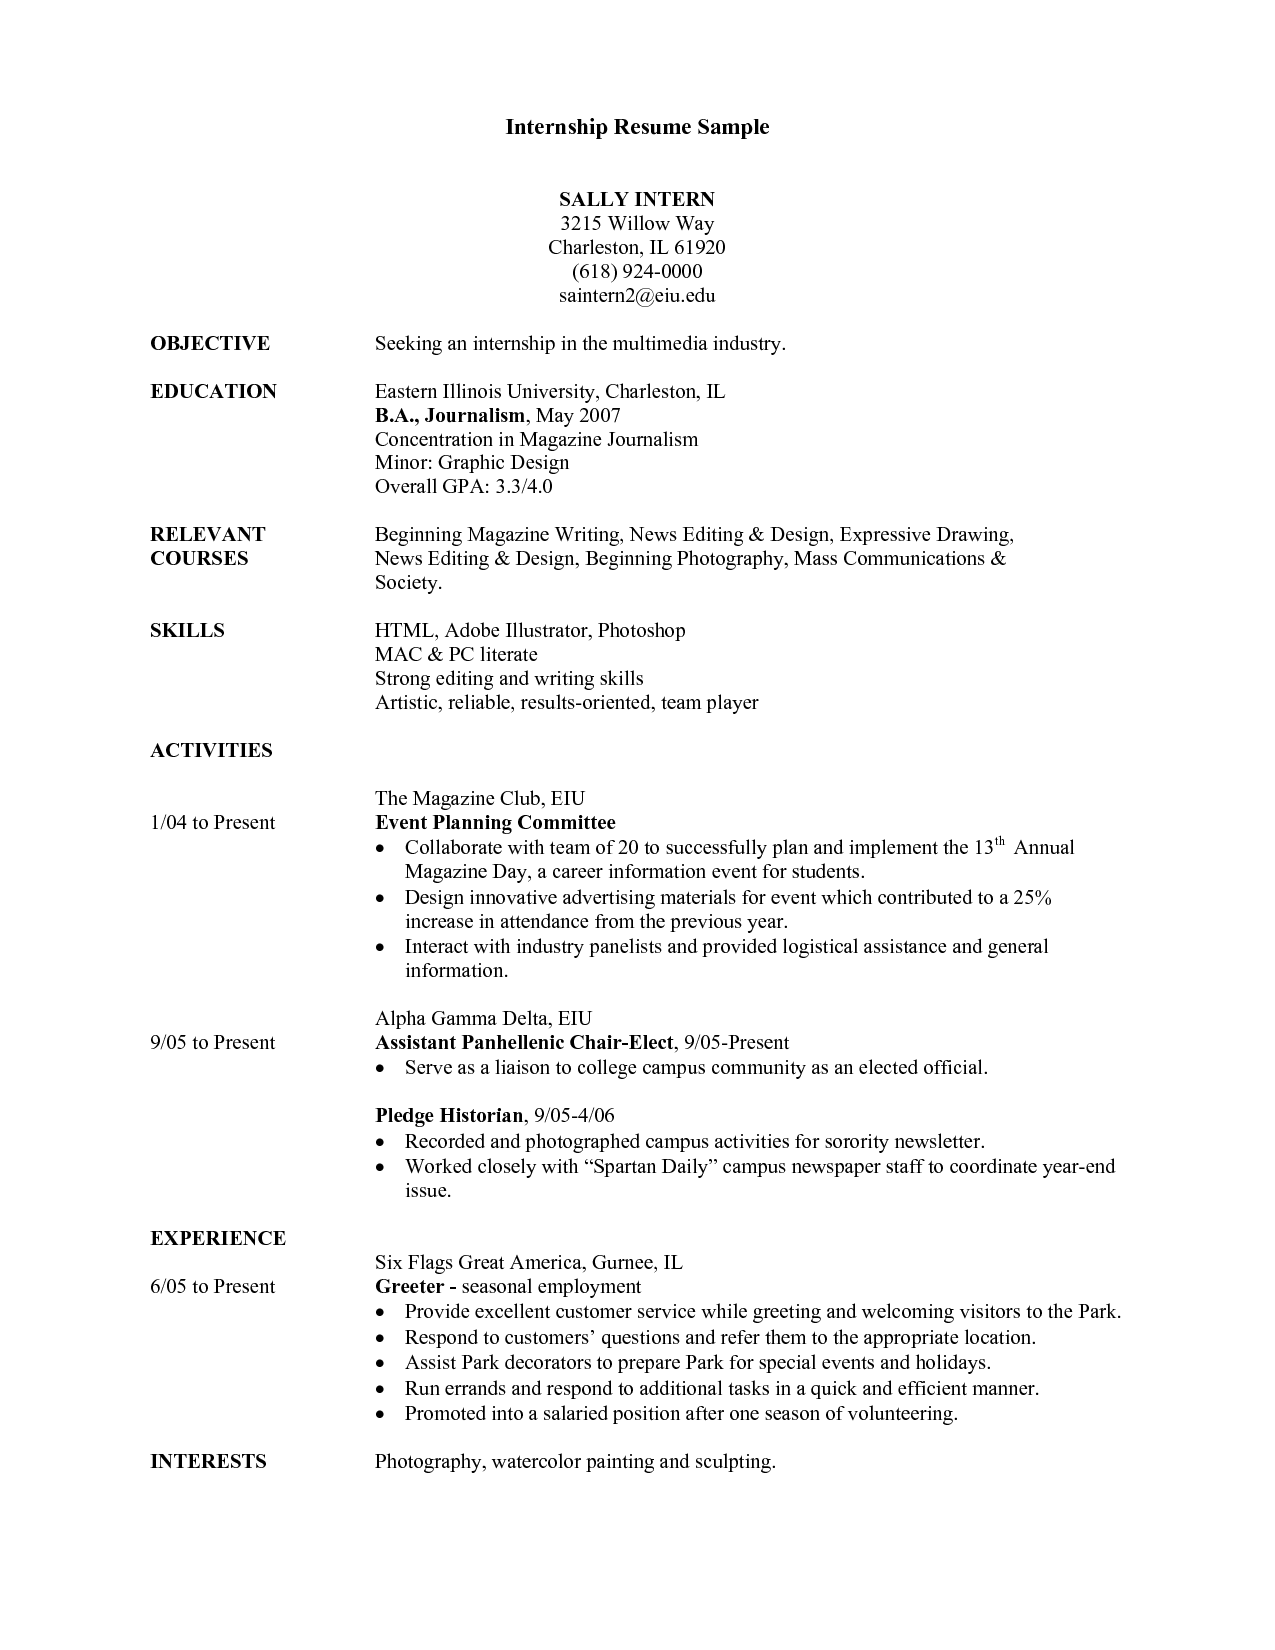 Resume Sample For College Student College Student Resume For Internship Task List Templates